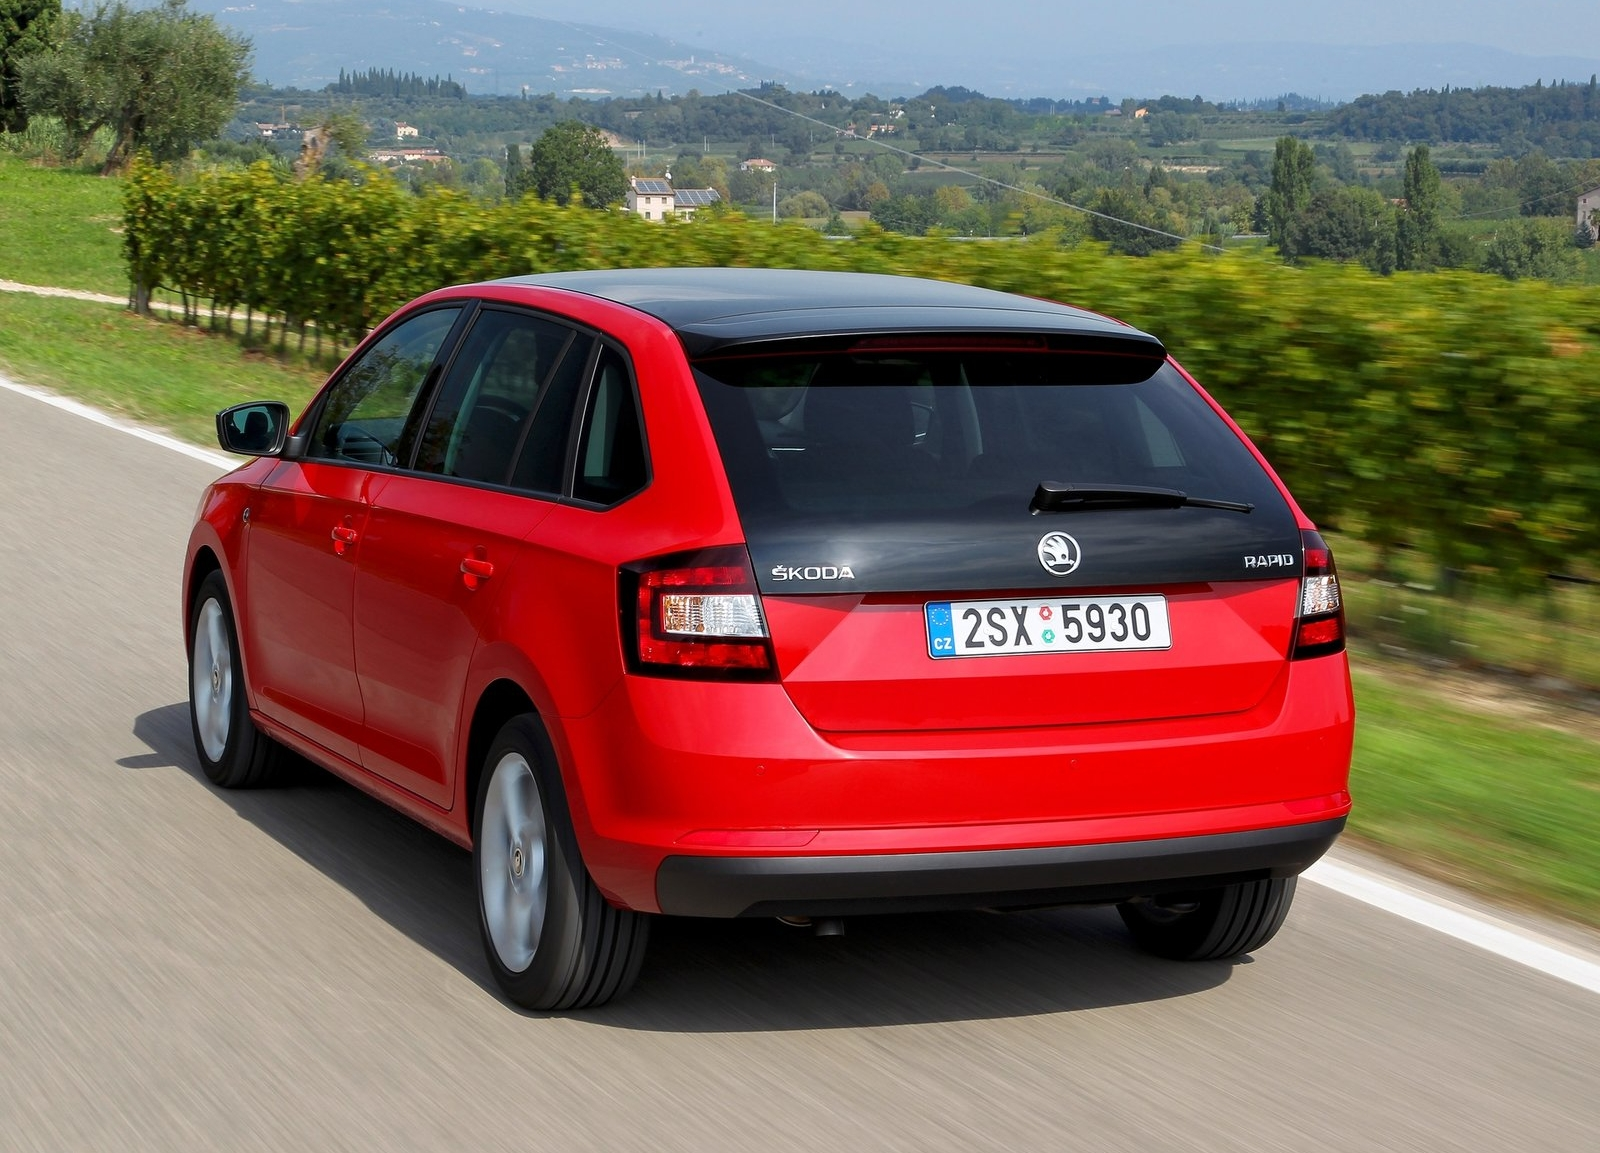 Czech automaker skoda auto arrived at frankfurt with a whole range of new models ranging from hatchbacks to sedans and even fast sporty four door saloons